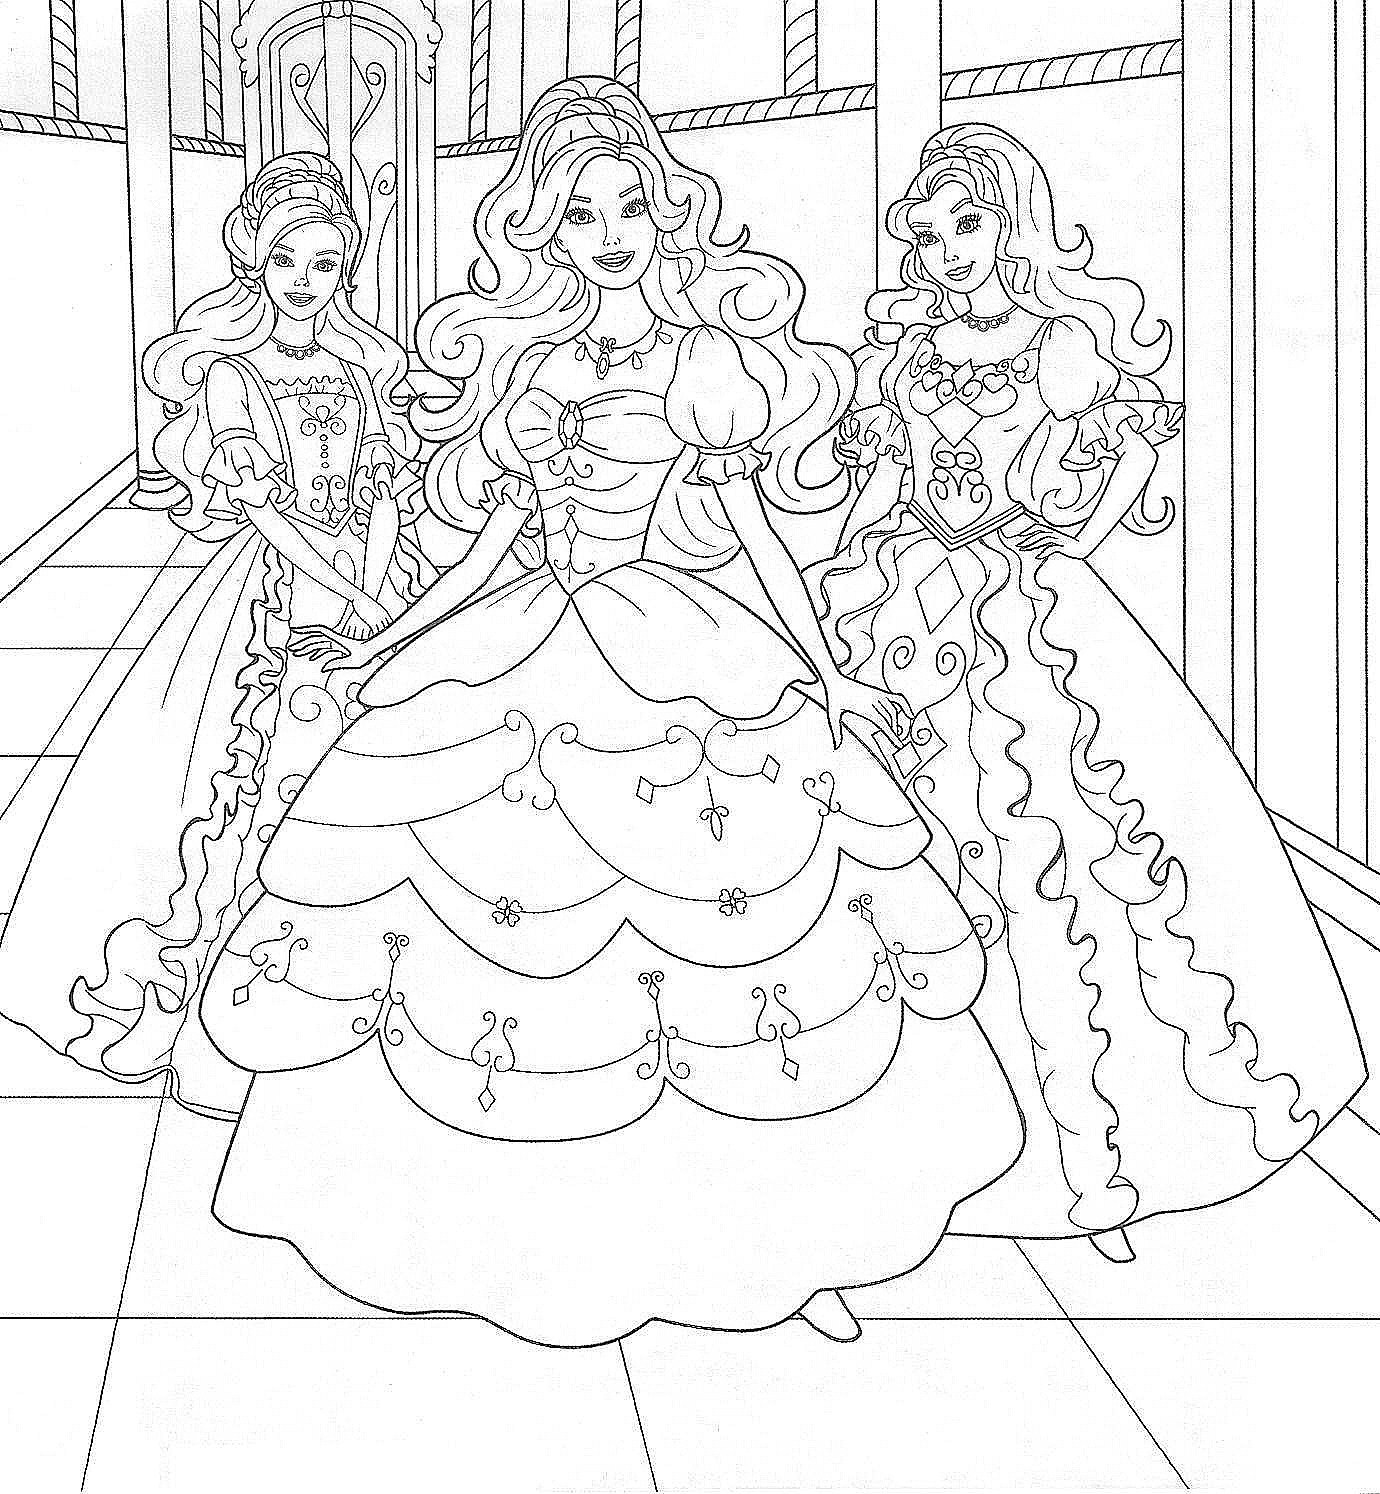 barbie printables barbie coloring pages for girls toddlers adults print barbie printables 1 1